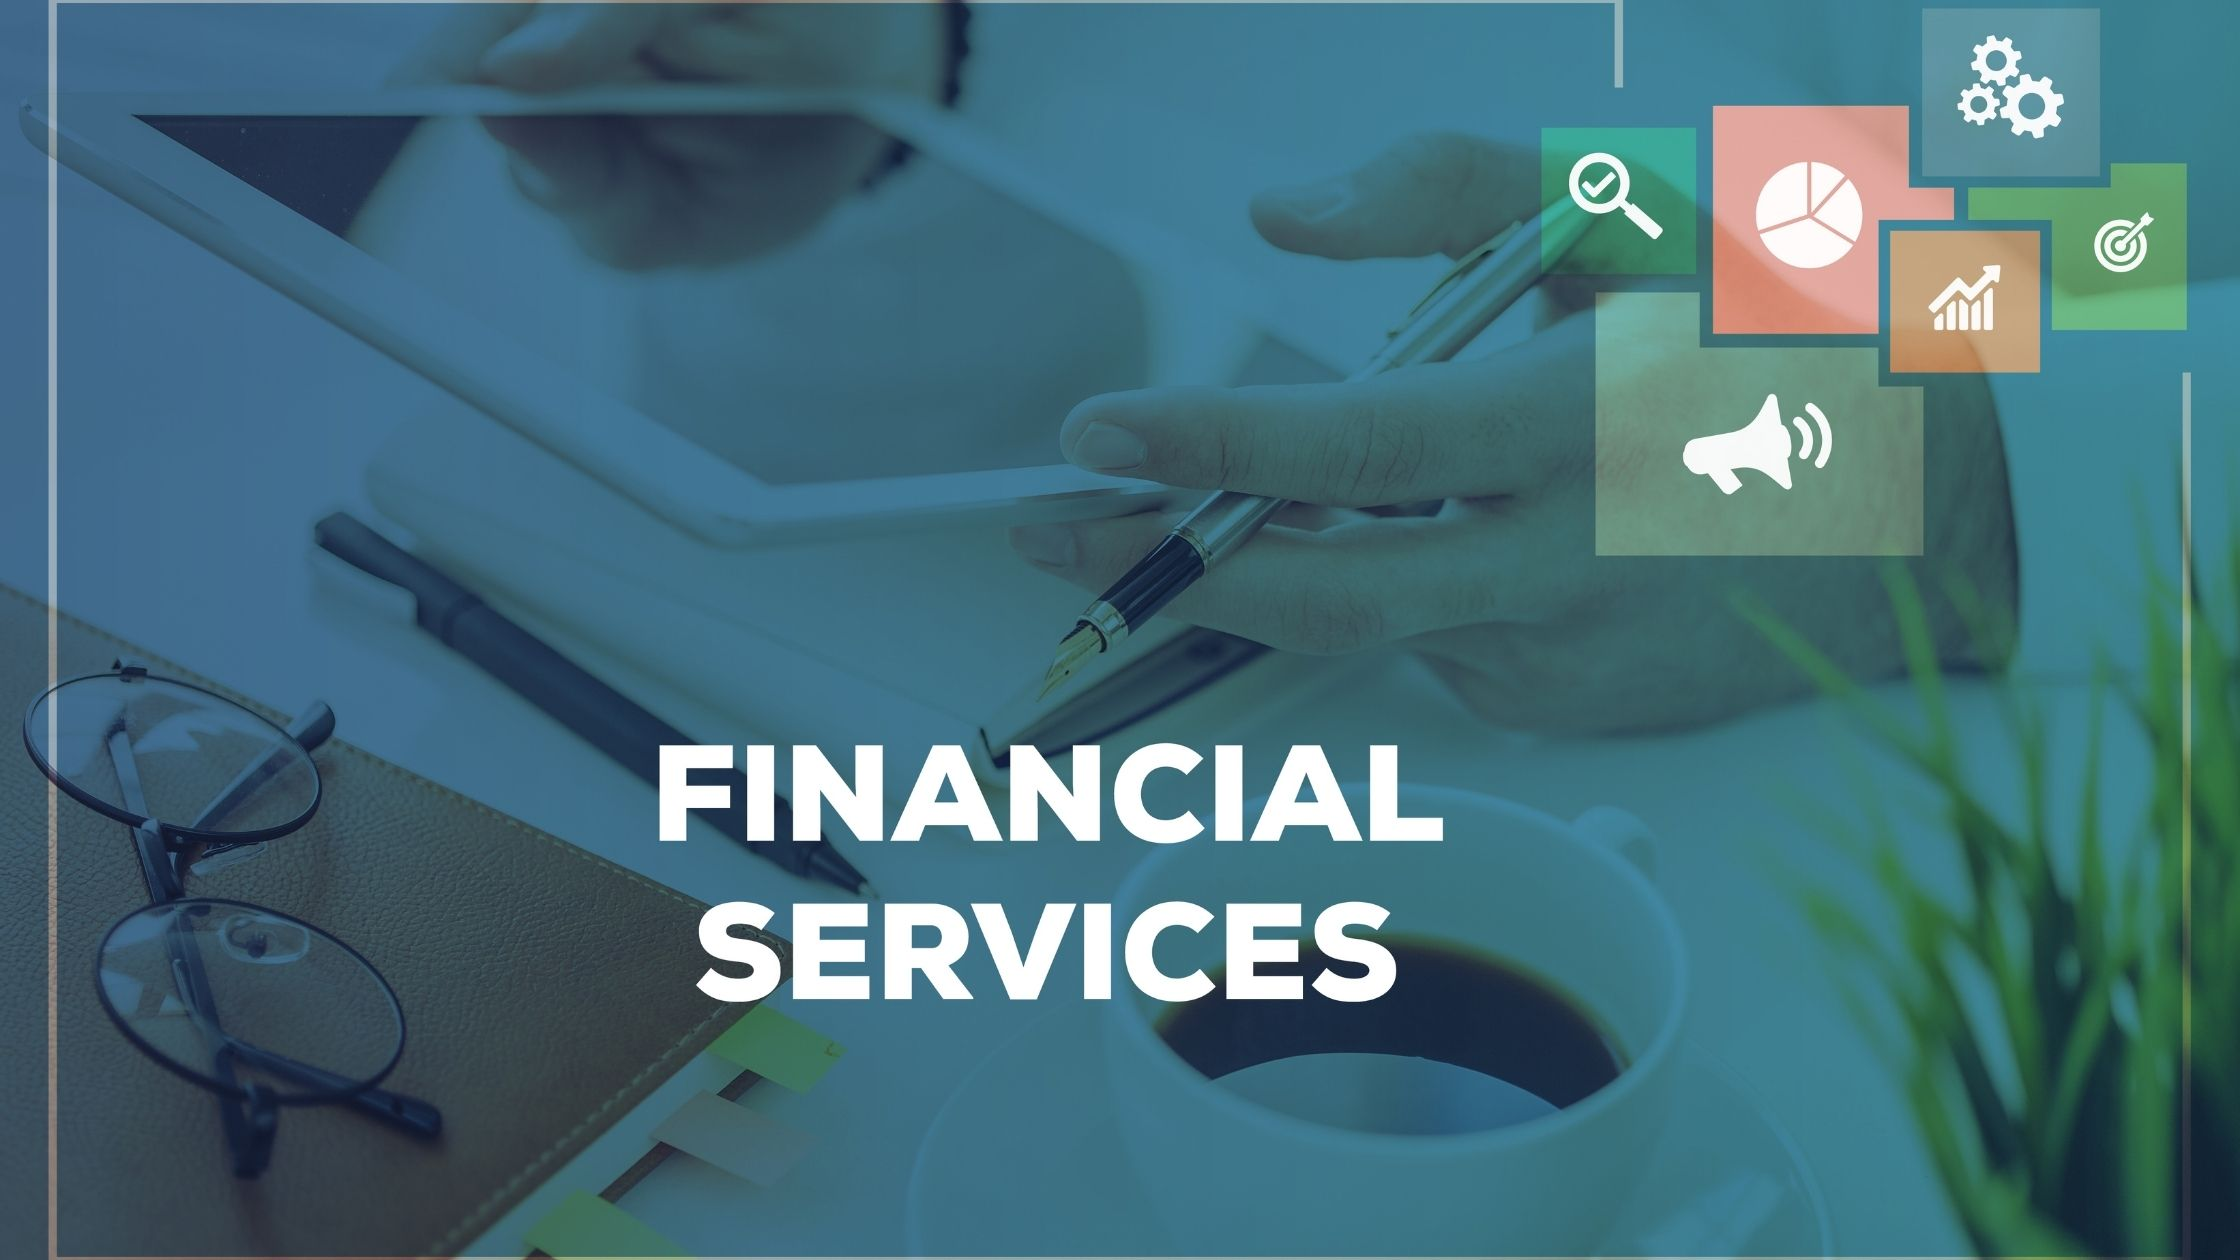 dm financial services